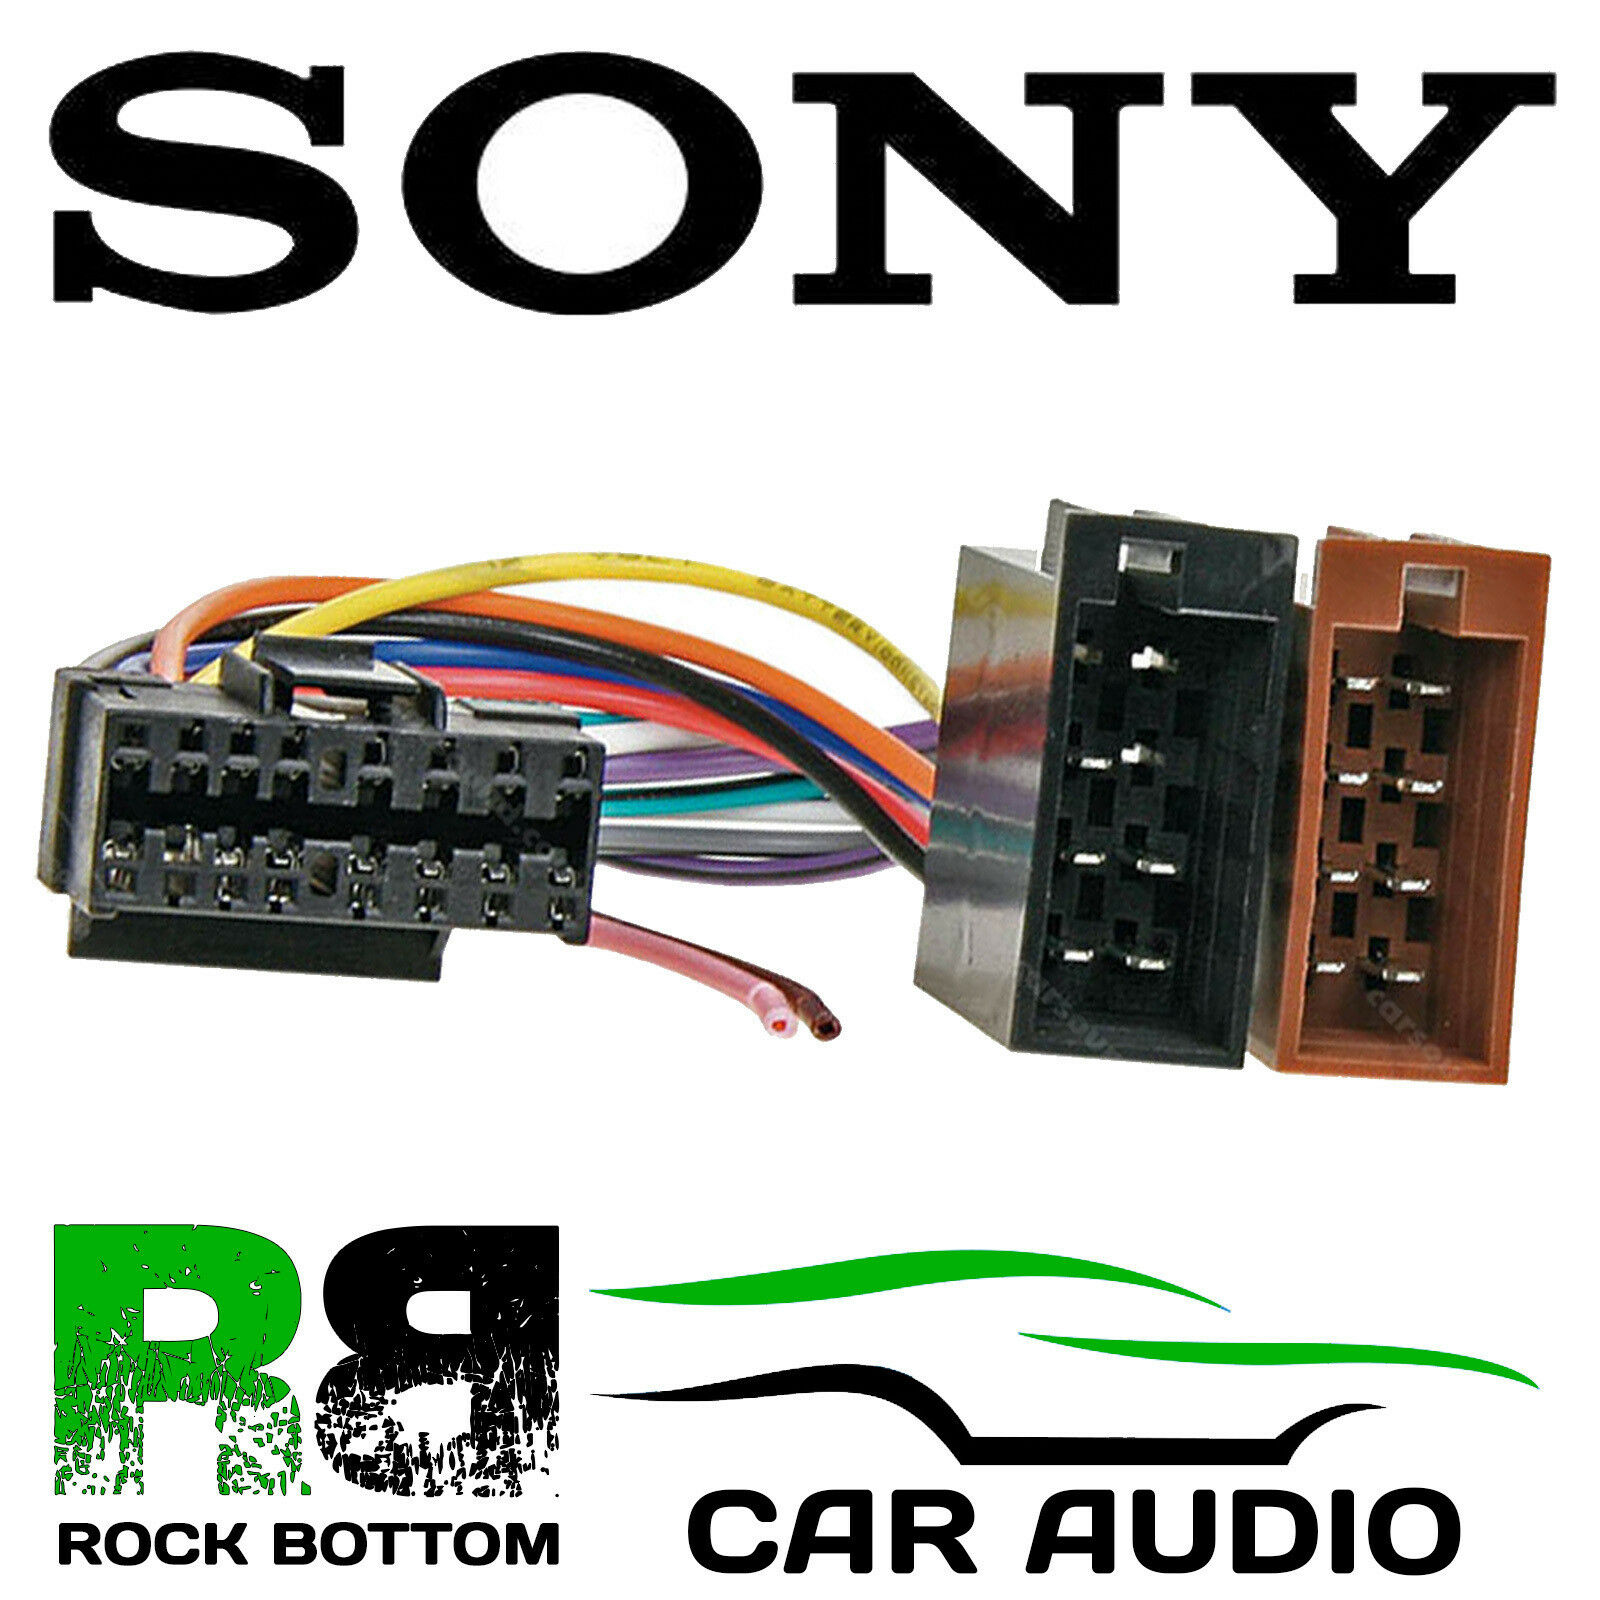 Sony Cdx Series Car Radio Stereo 16 Pin Wiring Harness Loom Iso Lead Ct21so01 1 Of 1free Shipping